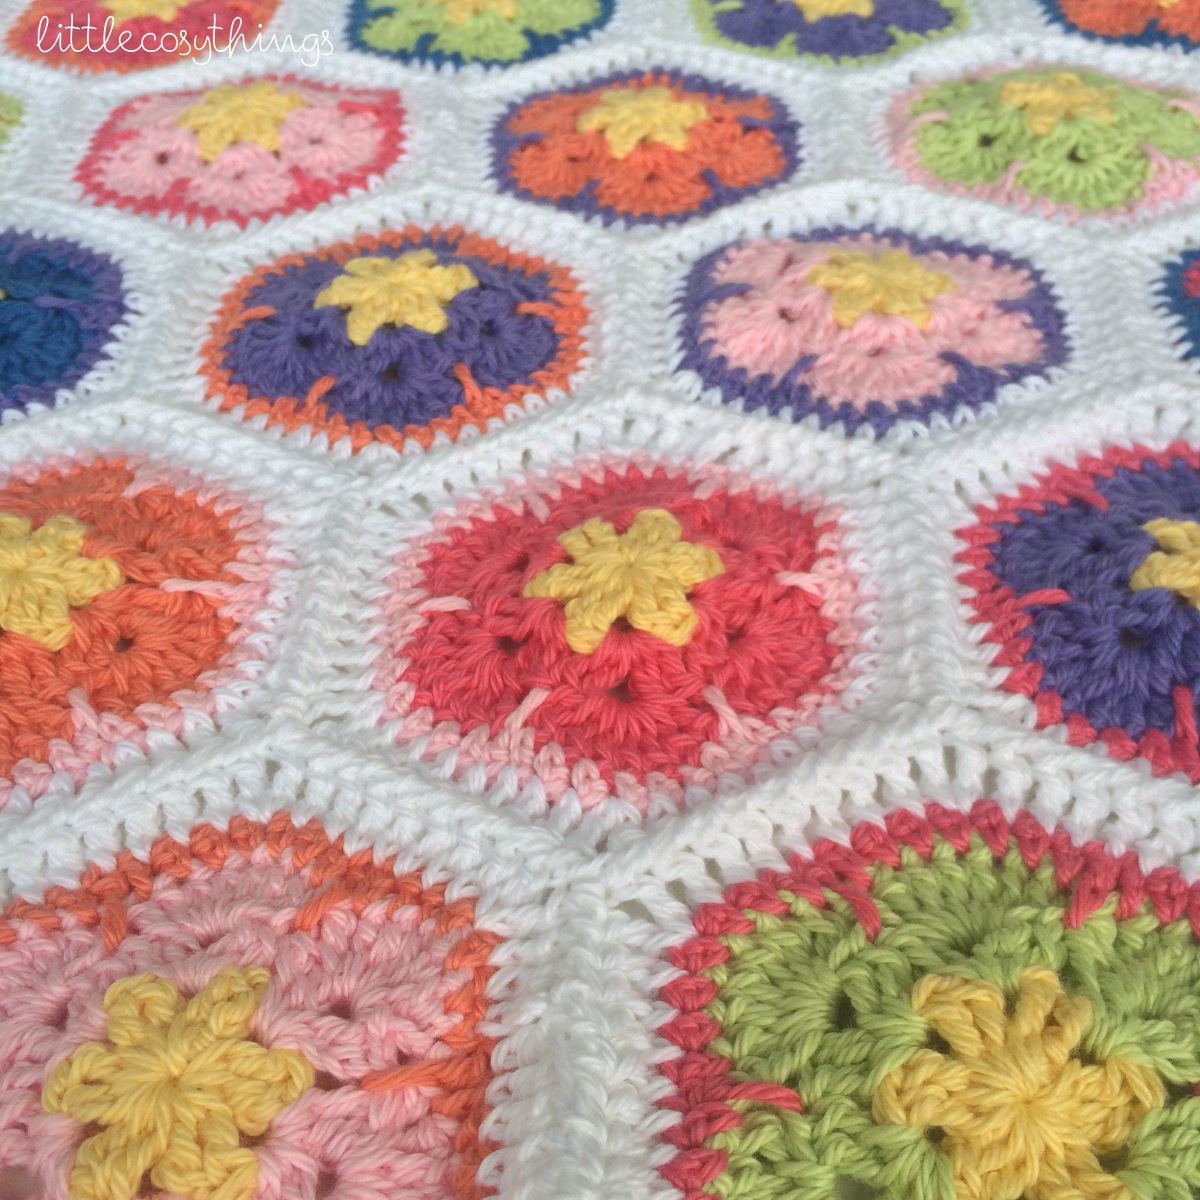 Free Knitted Crochet African Flower Pattern Dragon : An African Flower Crochet Blanket? Part ONE Little Cosy ...